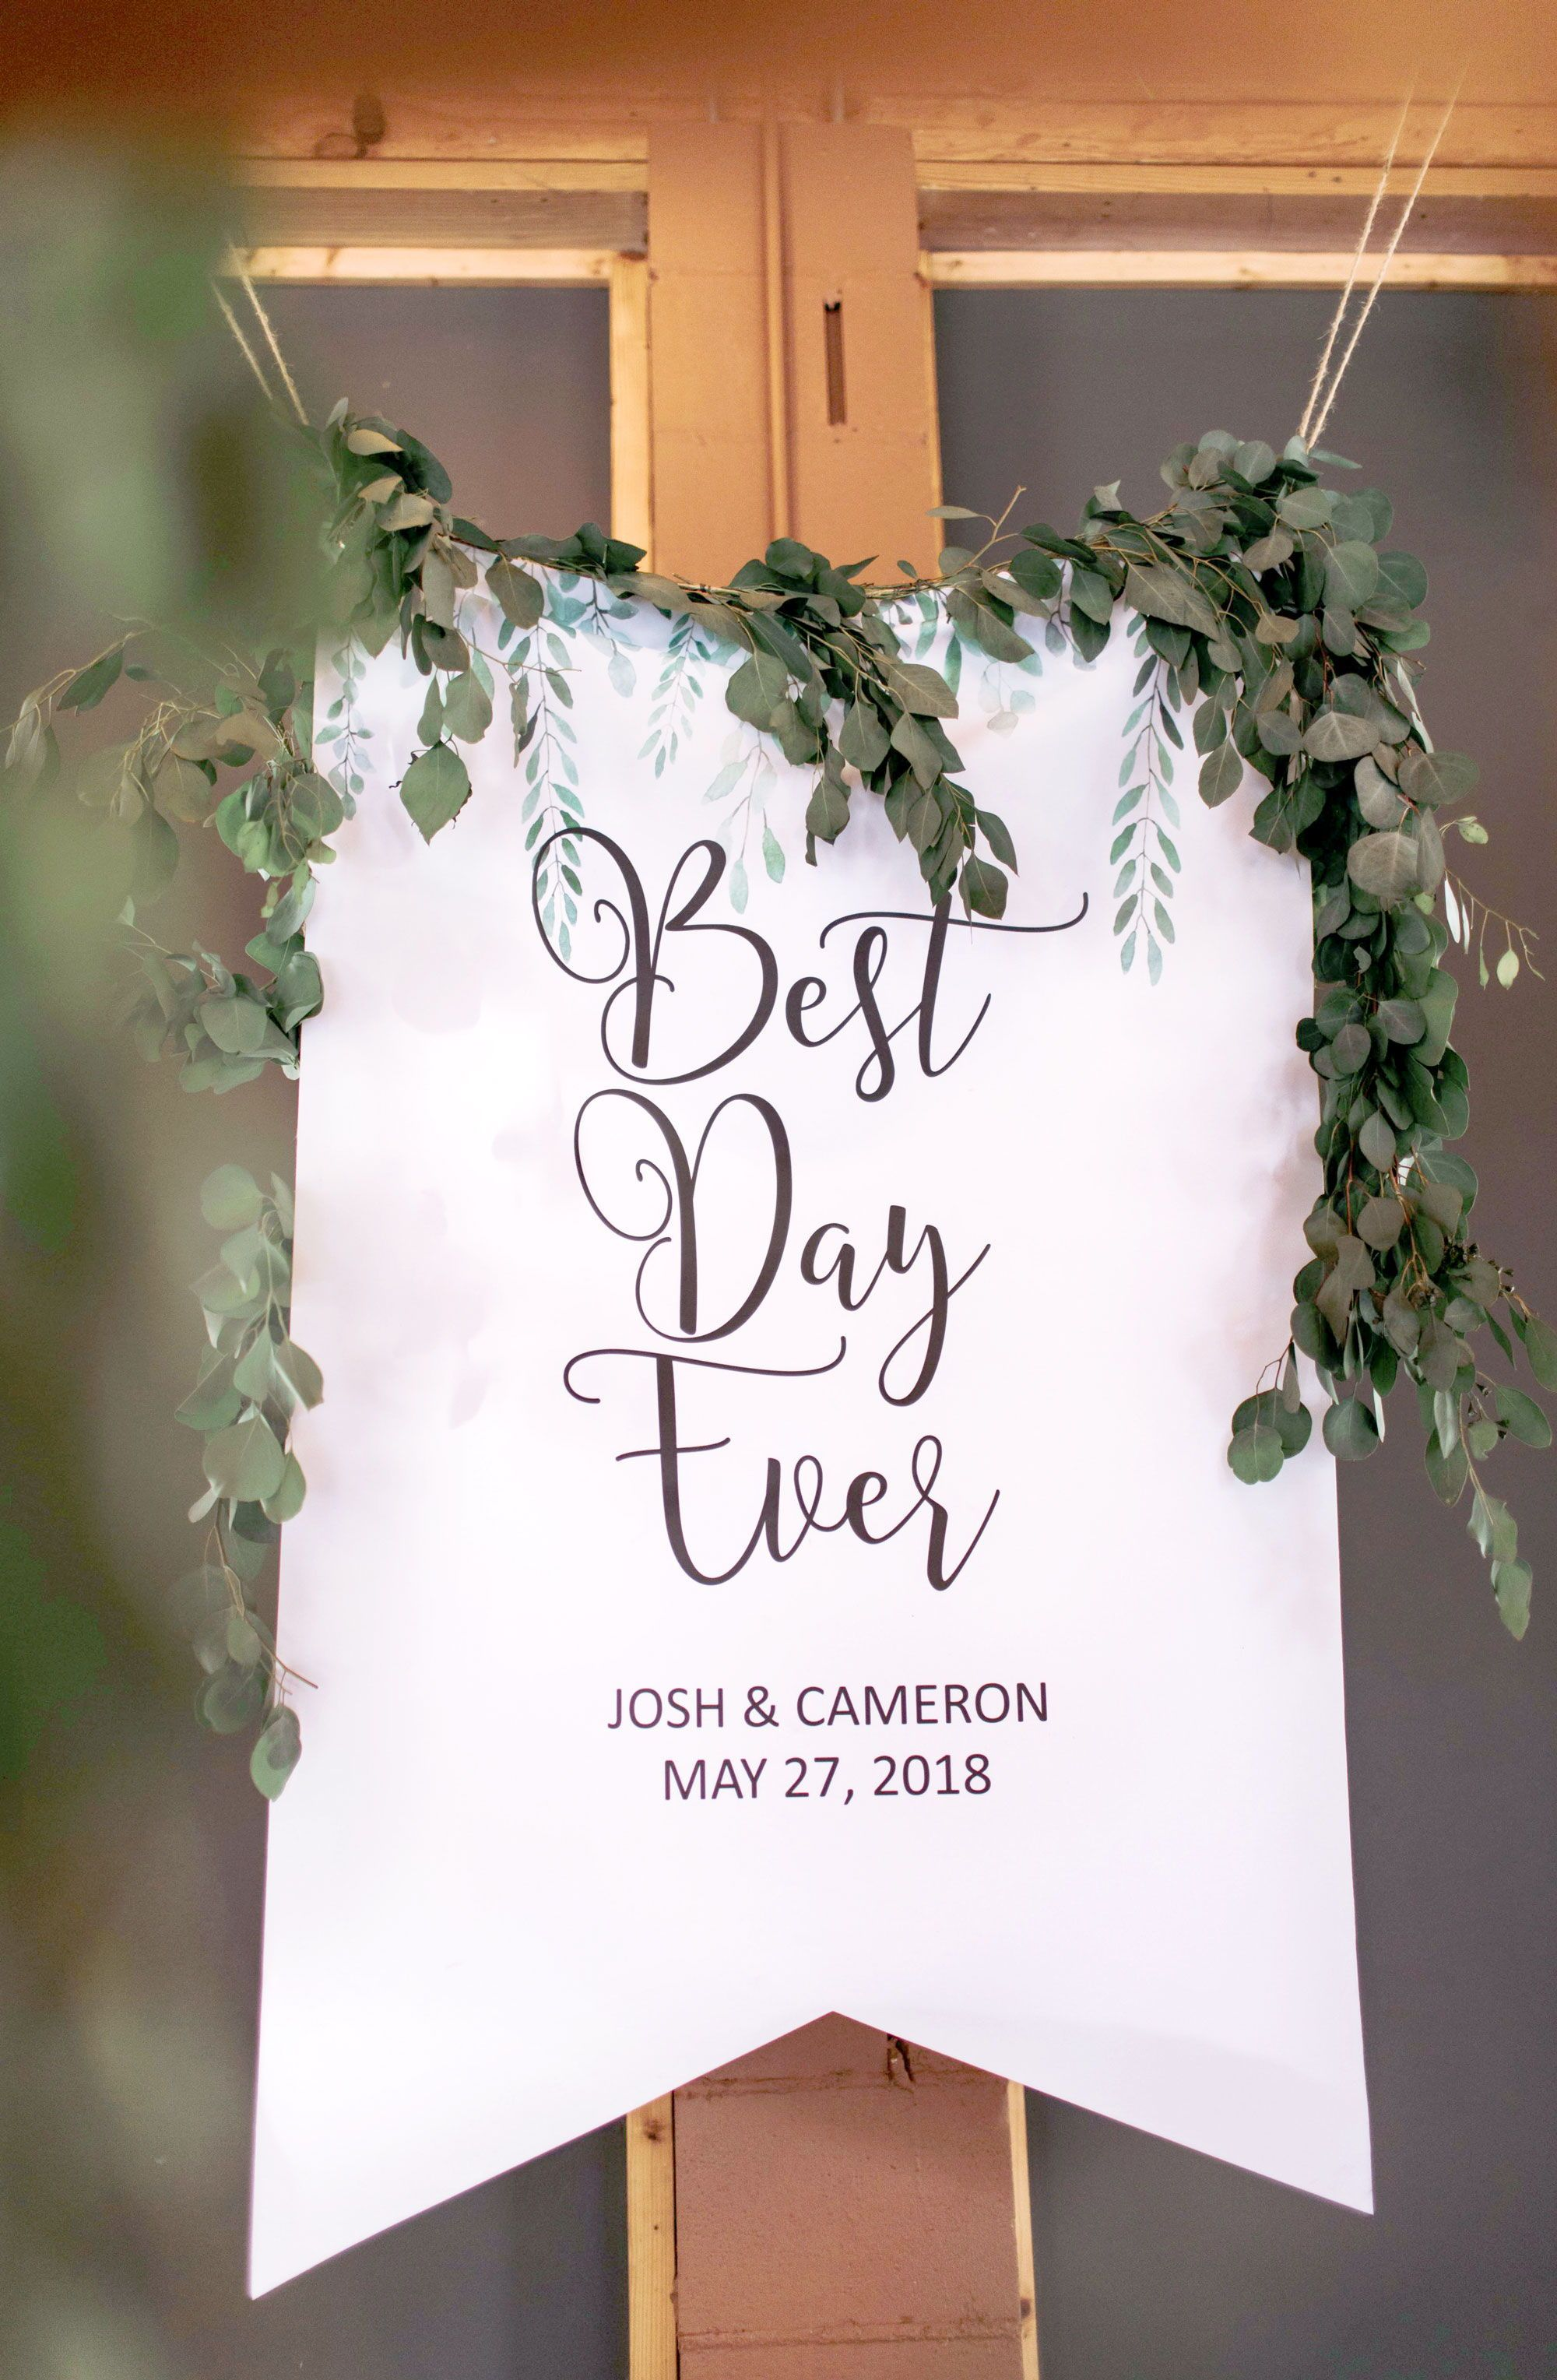 Personalized Best Day Ever Wedding Banner Handmade Wedding Decor Gifts At Www Zcreatedesign Com Or Shop Wedding Backdrop Wedding Banner Wedding Signs